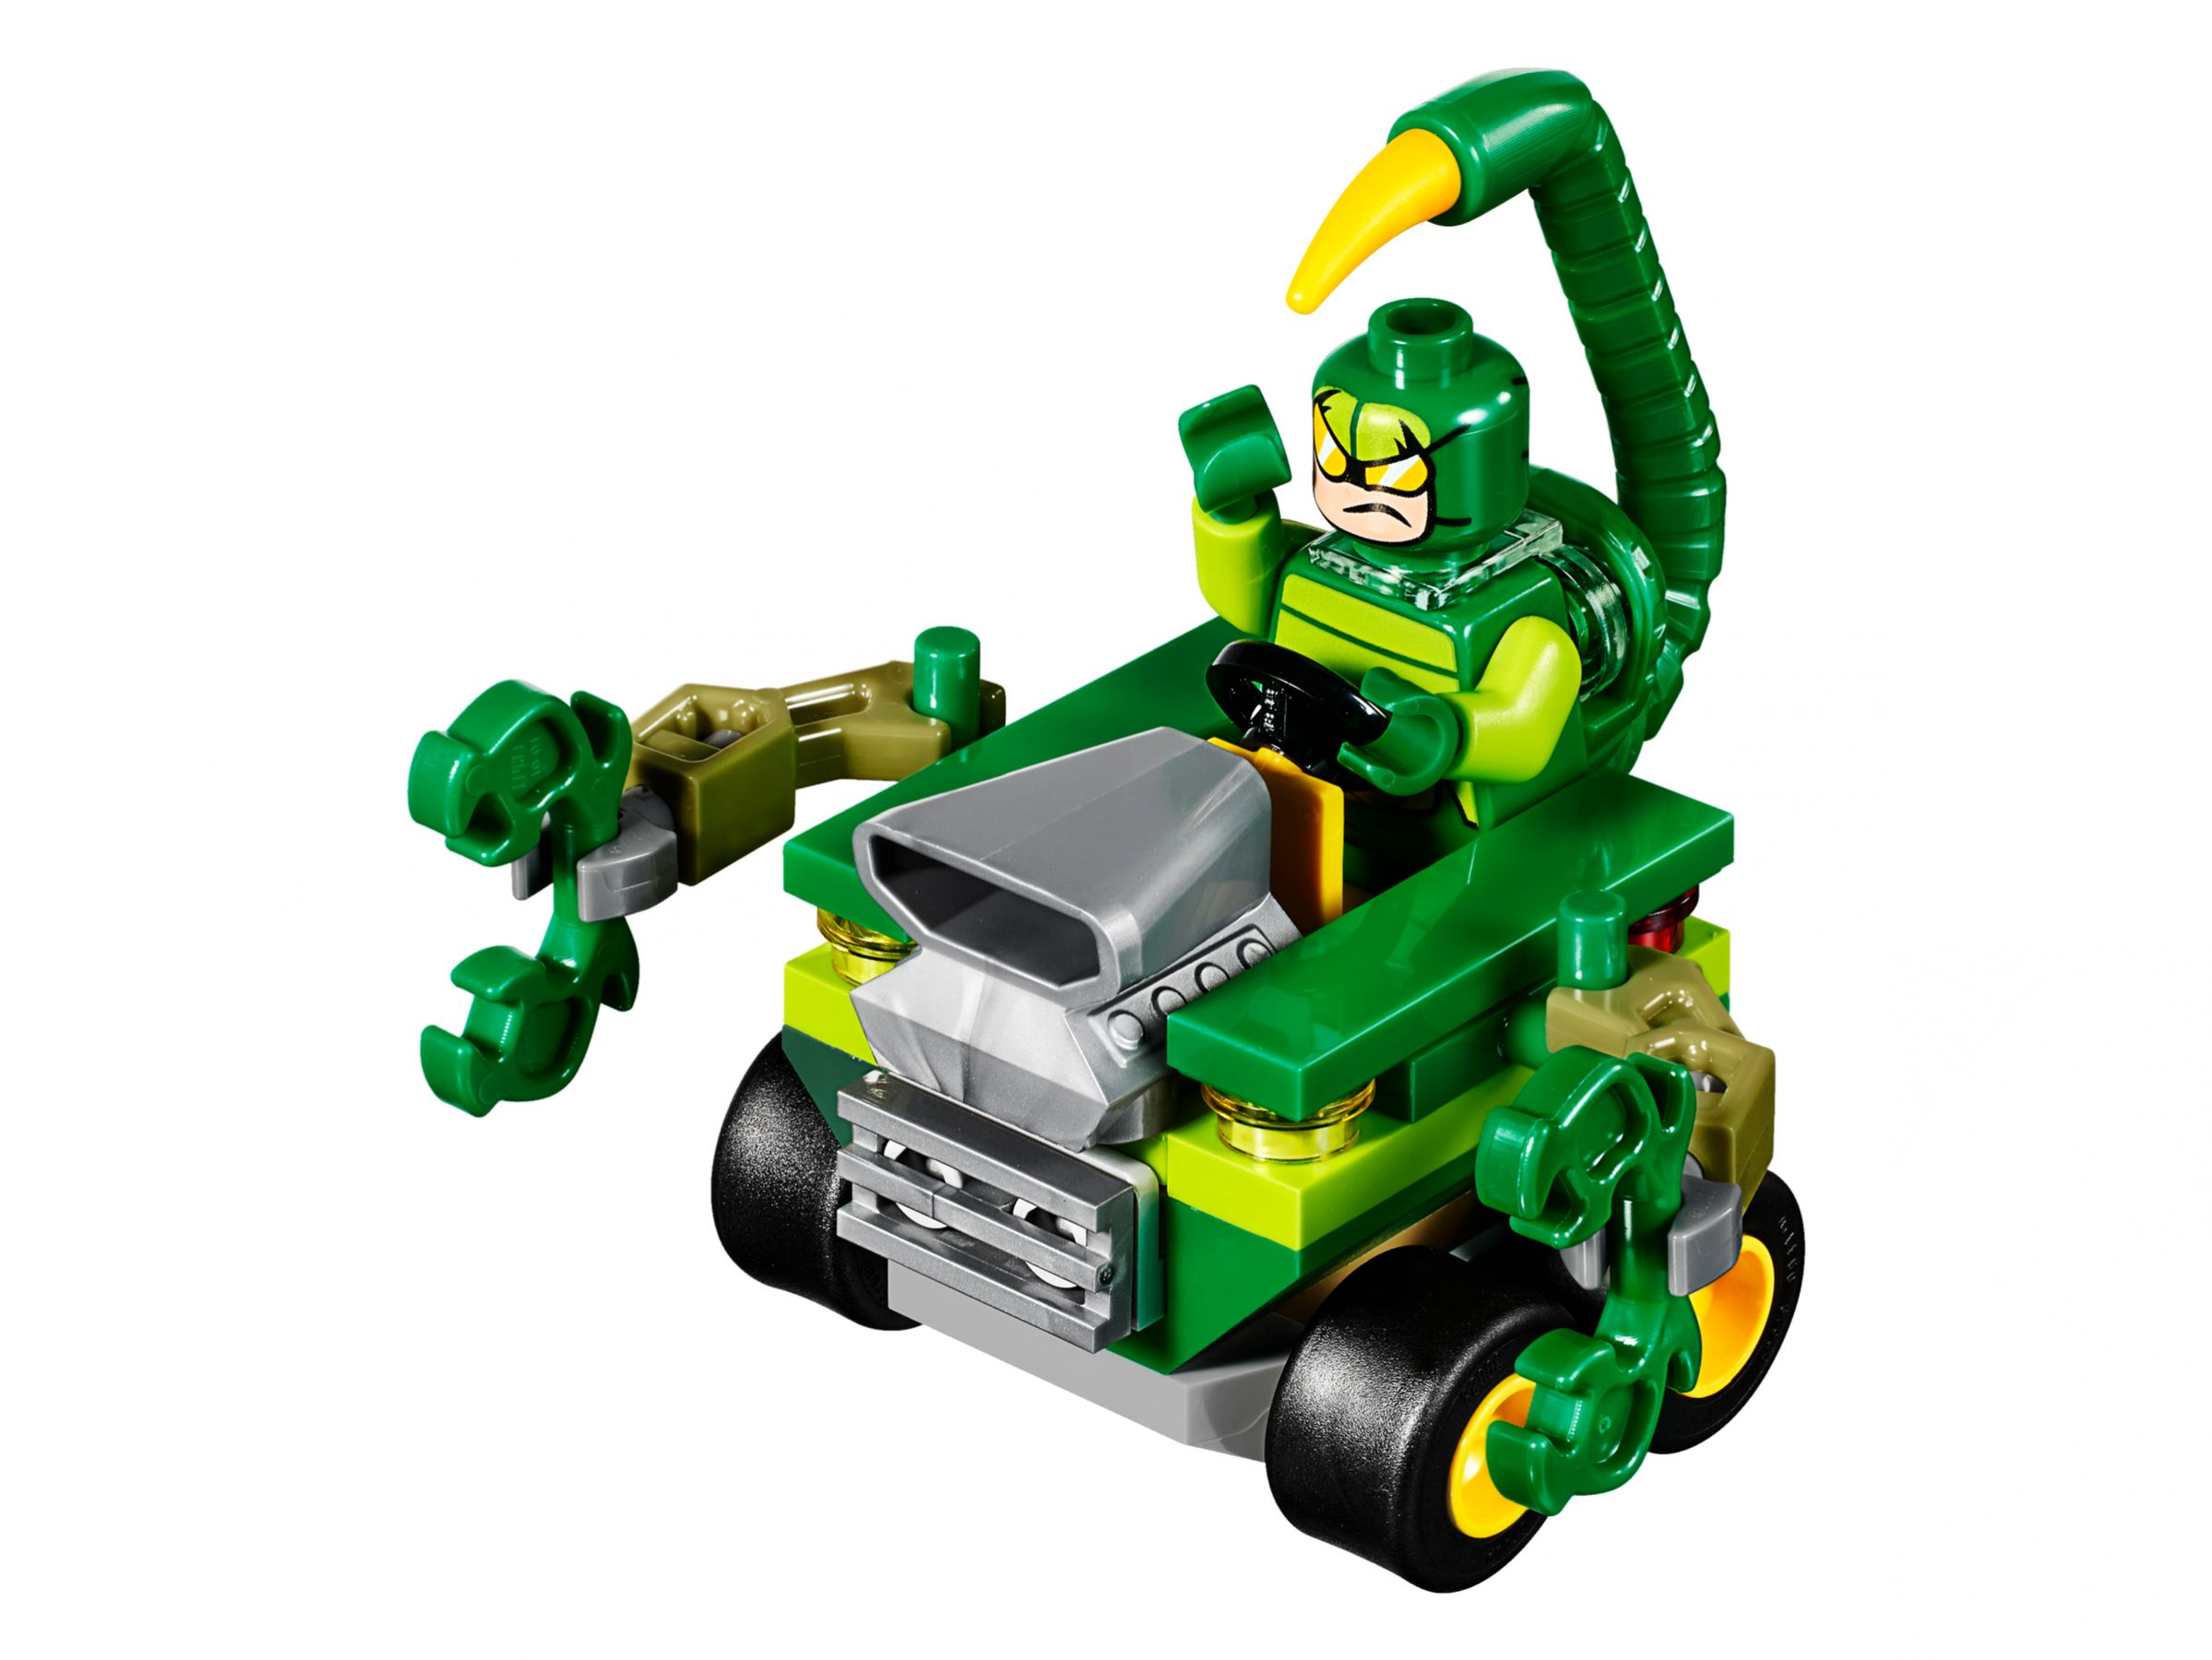 LEGO Super Heroes 76071 Mighty Micros: Spider-Man vs. Scorpion LEGO_76071_alt4.jpg